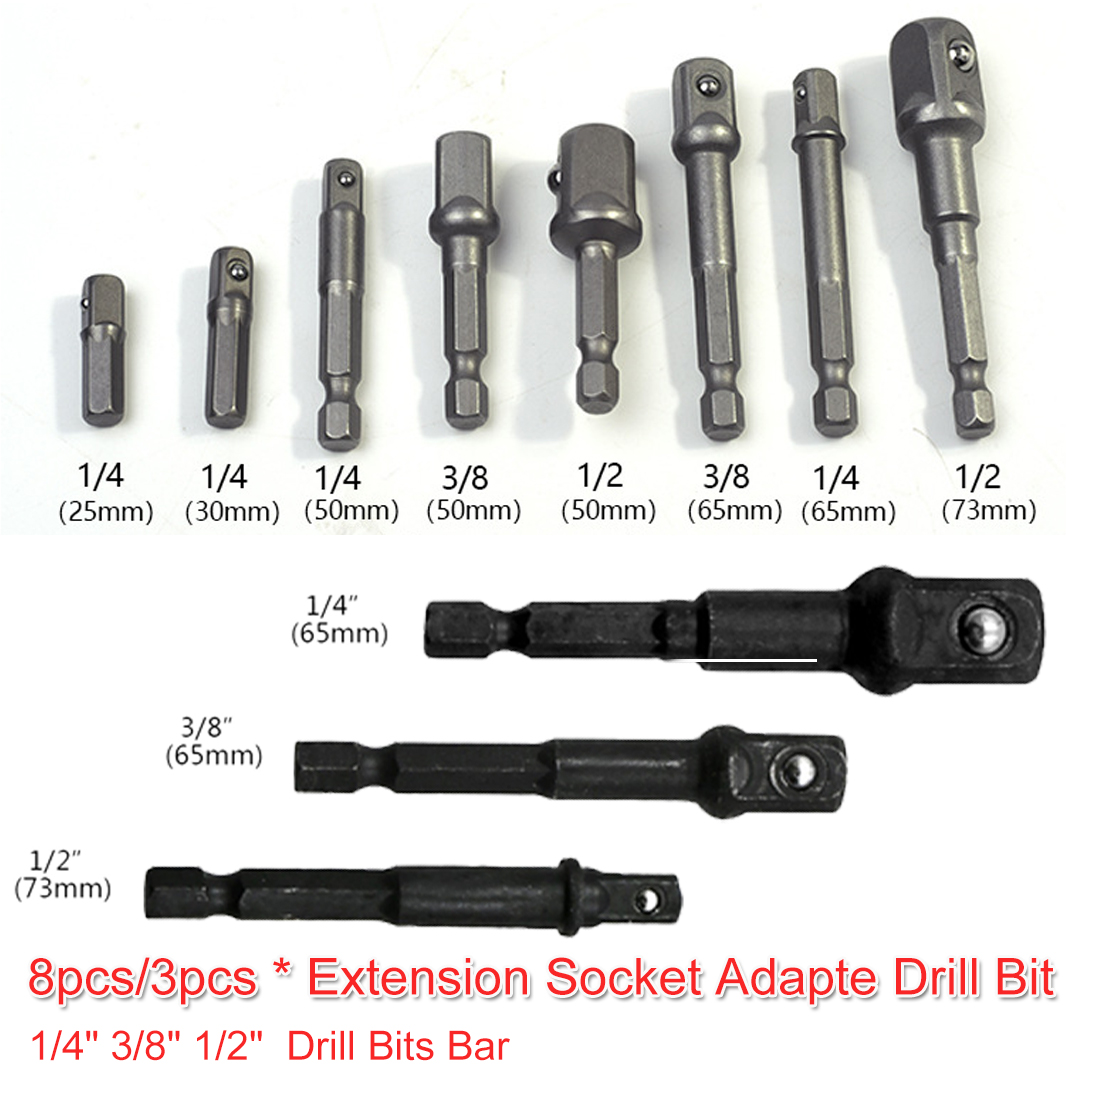 Hex Drill 8pcs/ 3pcs Socket Adapte Bit Set Nut Driver Power Shank 1/4